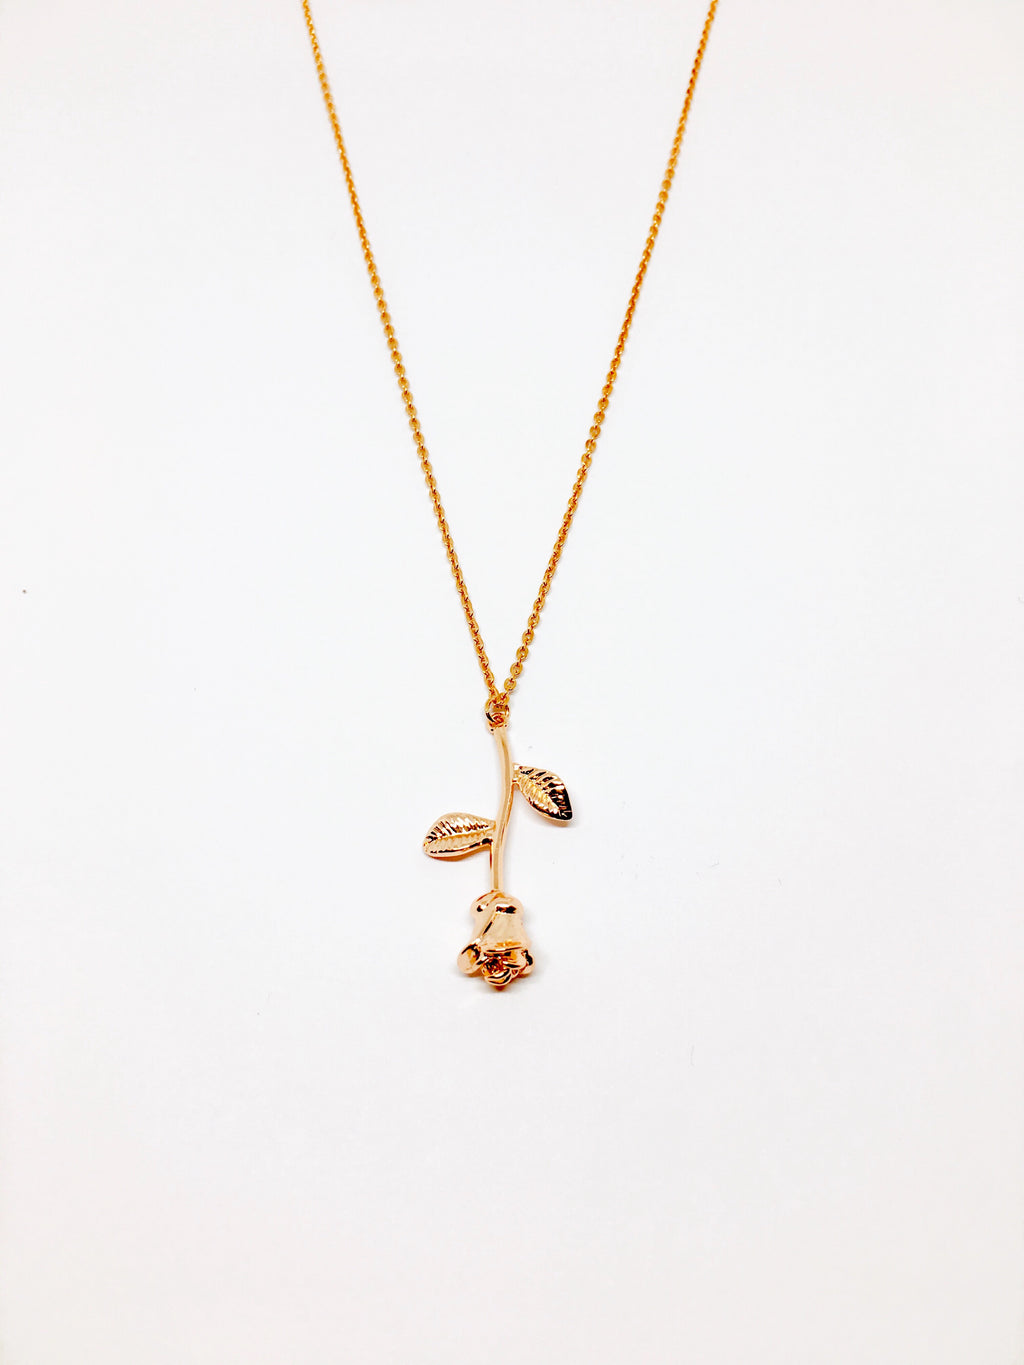 EXCLUSIVE ROSÉ NECKLACE